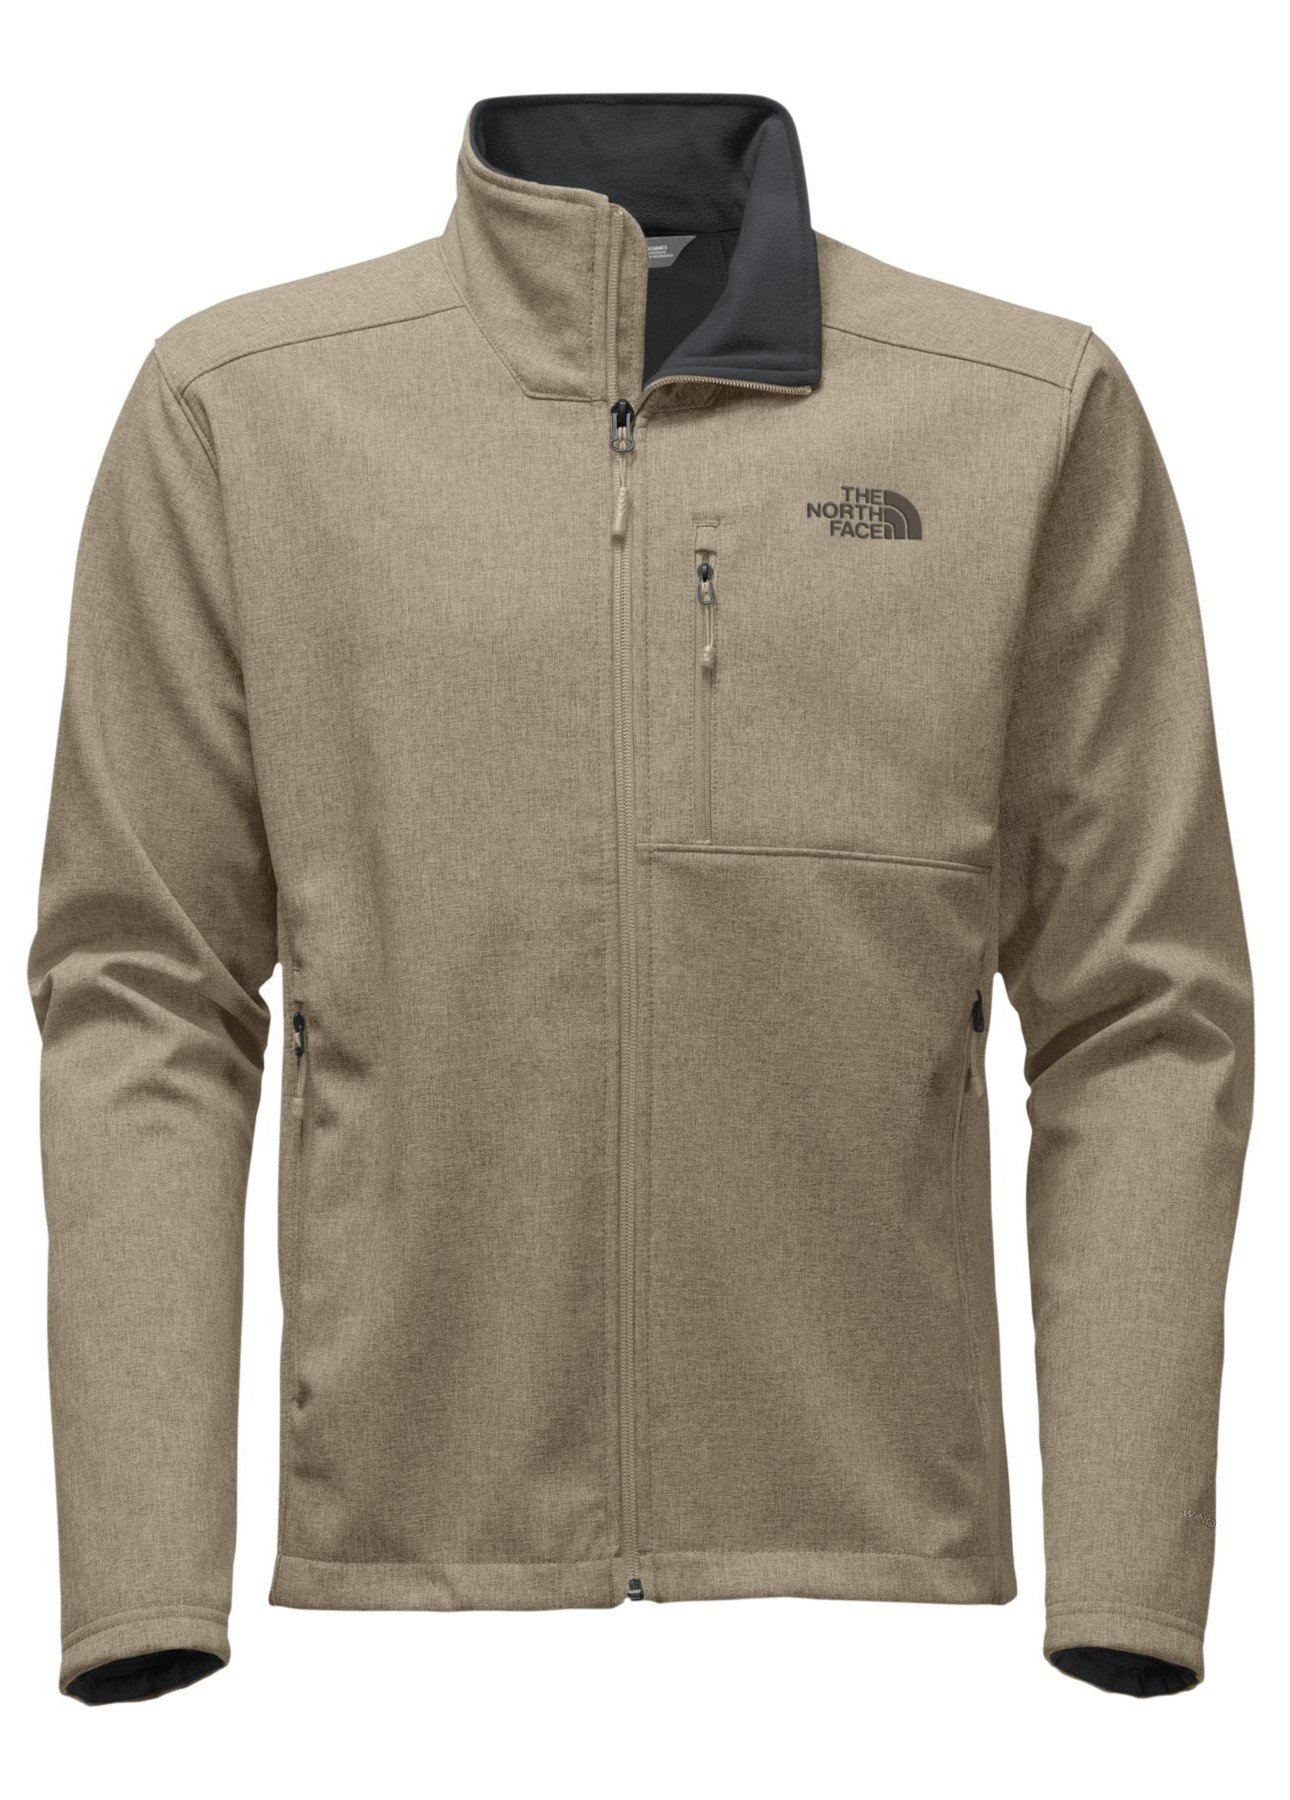 The North Face Mens Apex Bionic 2 Jacket Dune Beige Heather/Dune Beige Heather - L by The North Face